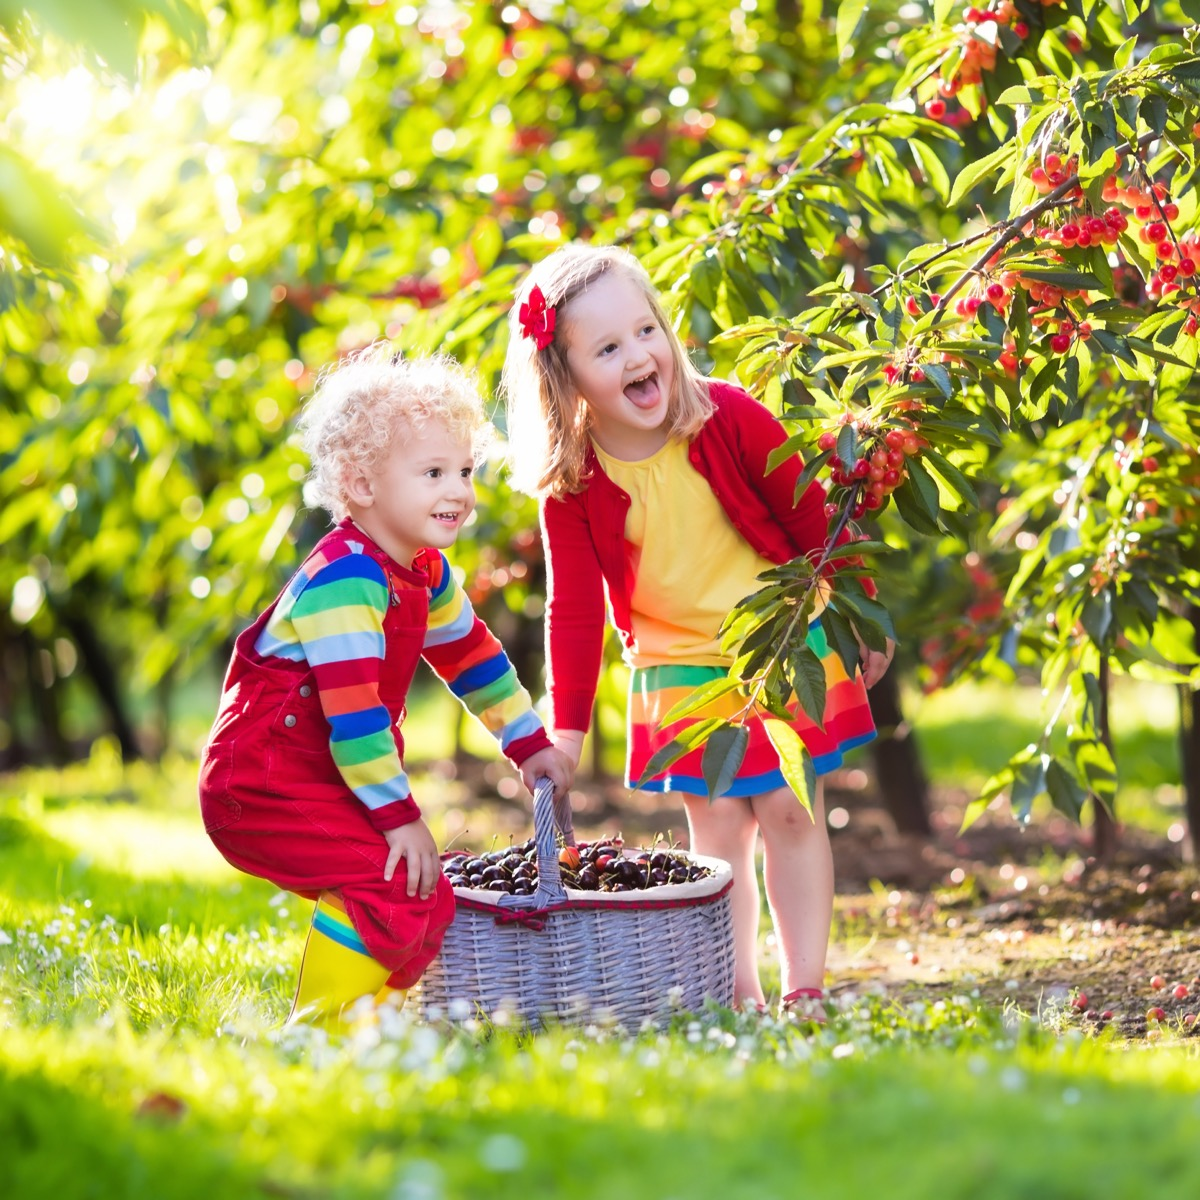 Kids berry picking and smiling on farm